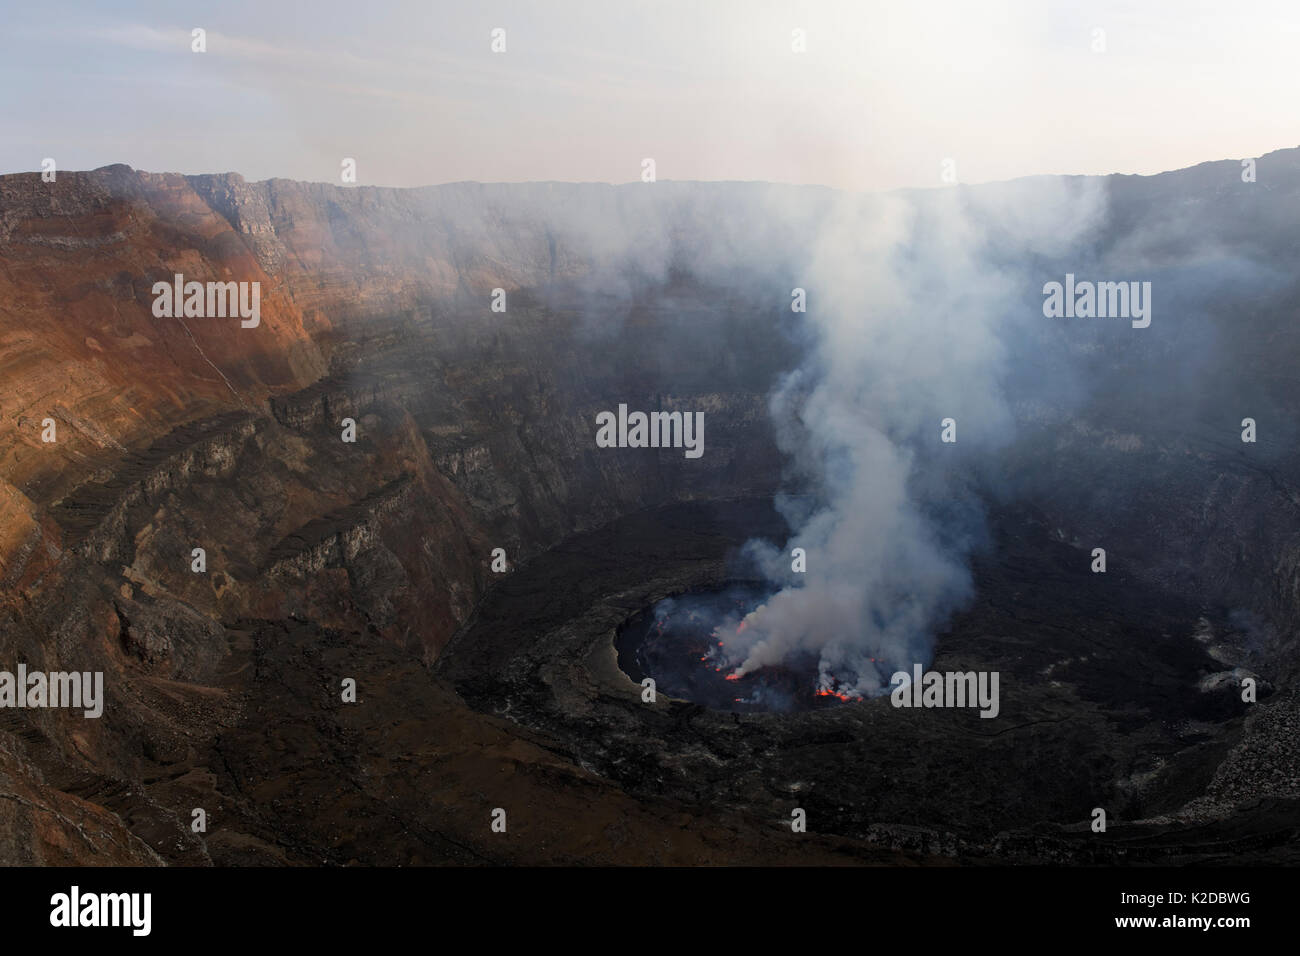 Steam rising from active lava lake in the crater of Nyiragongo Volcano, Virunga National Park, North Kivu Province, Democratic Republic of Congo, Africa - Stock Image